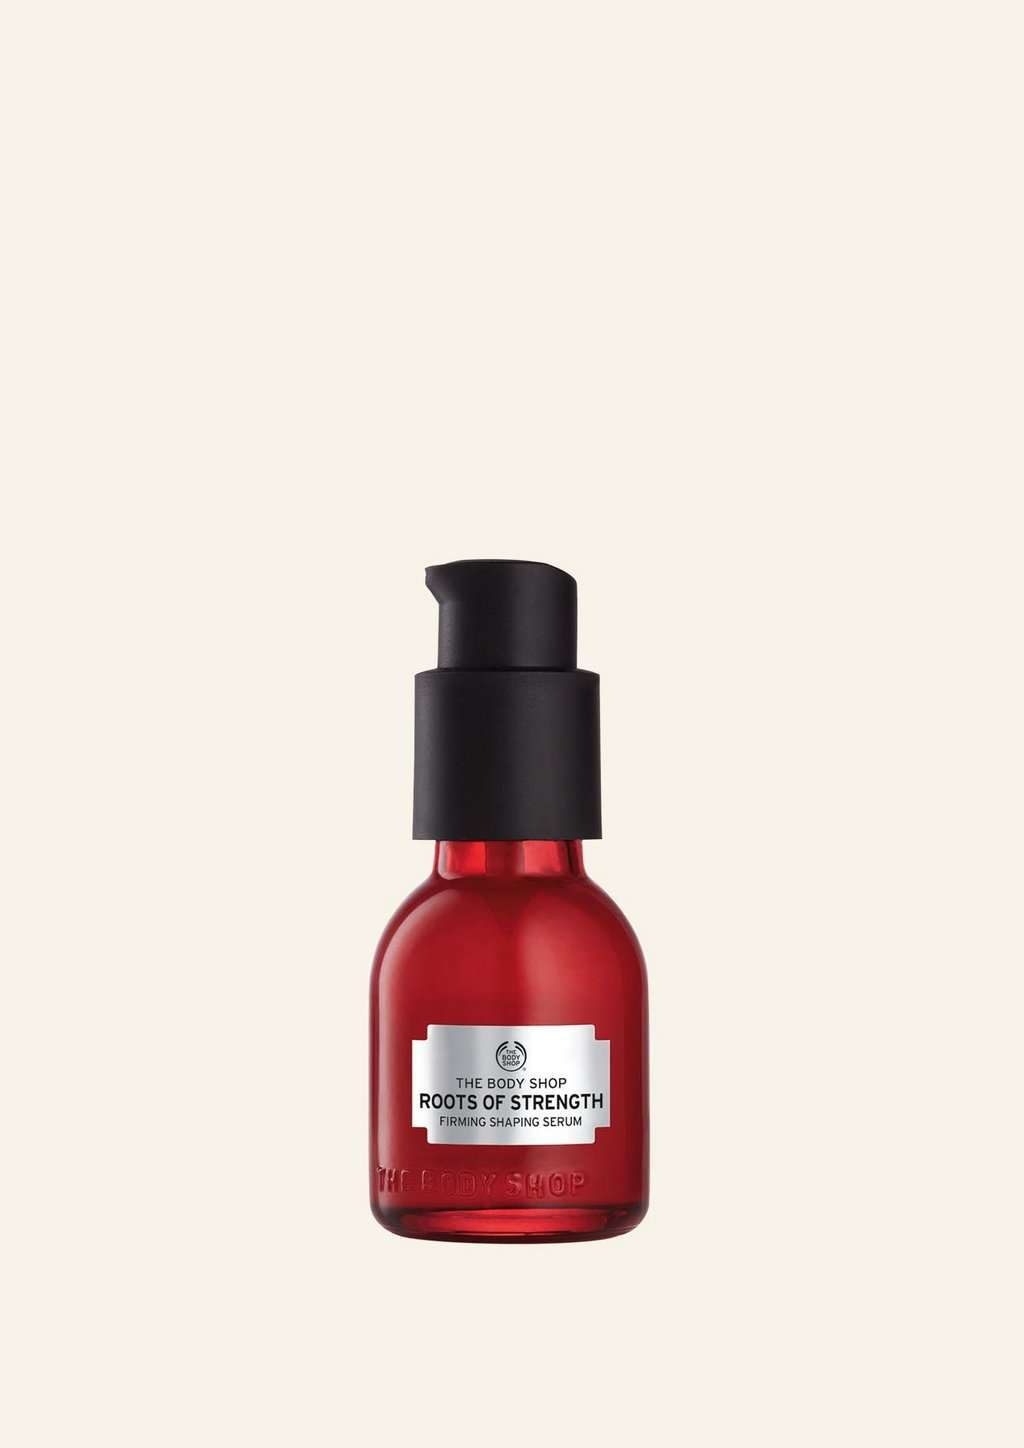 Roots of strength shaping serum